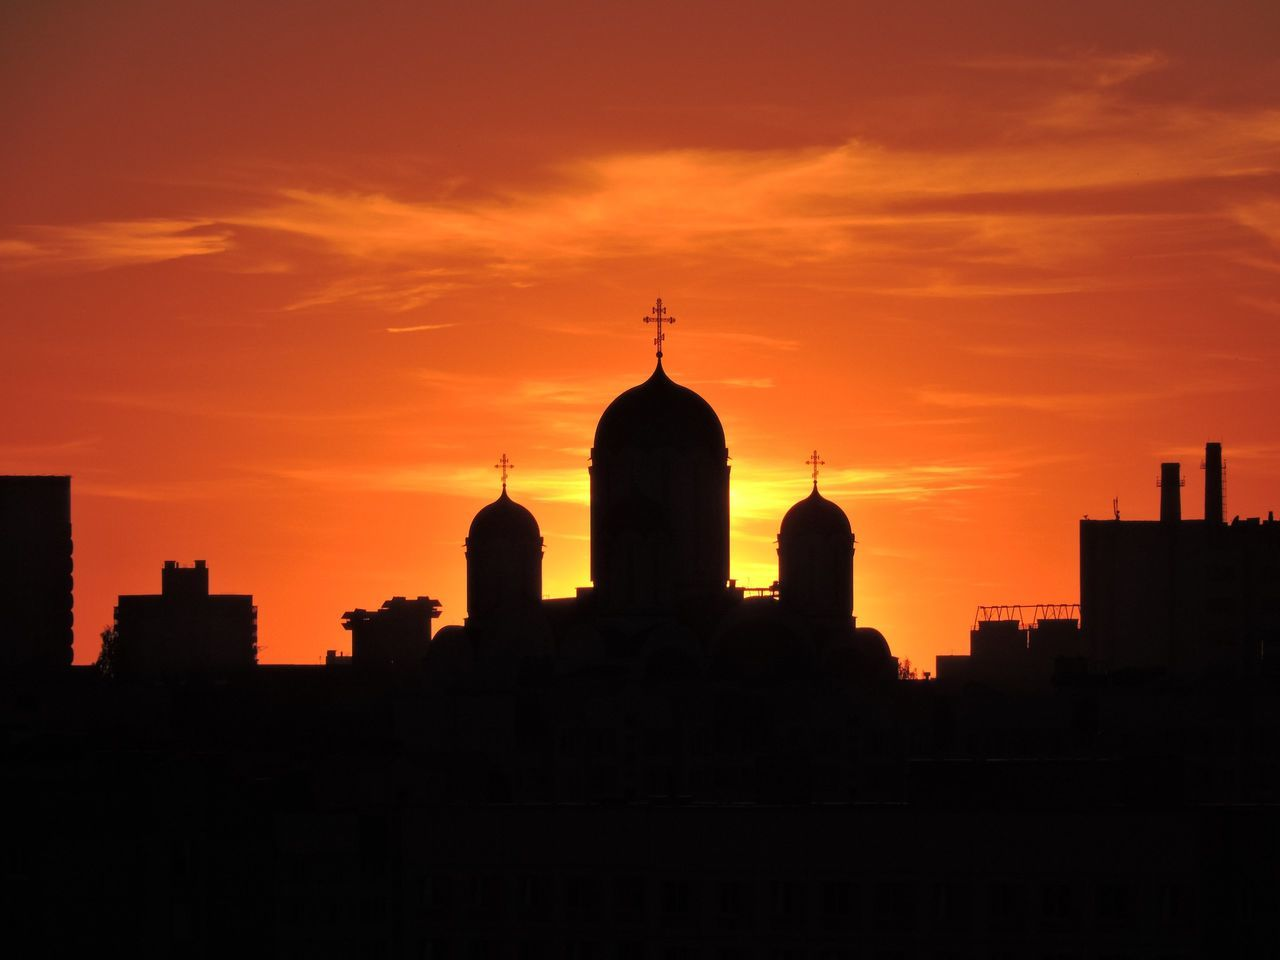 sunset, architecture, silhouette, building exterior, built structure, skyscraper, city, orange color, cityscape, sky, no people, modern, outdoors